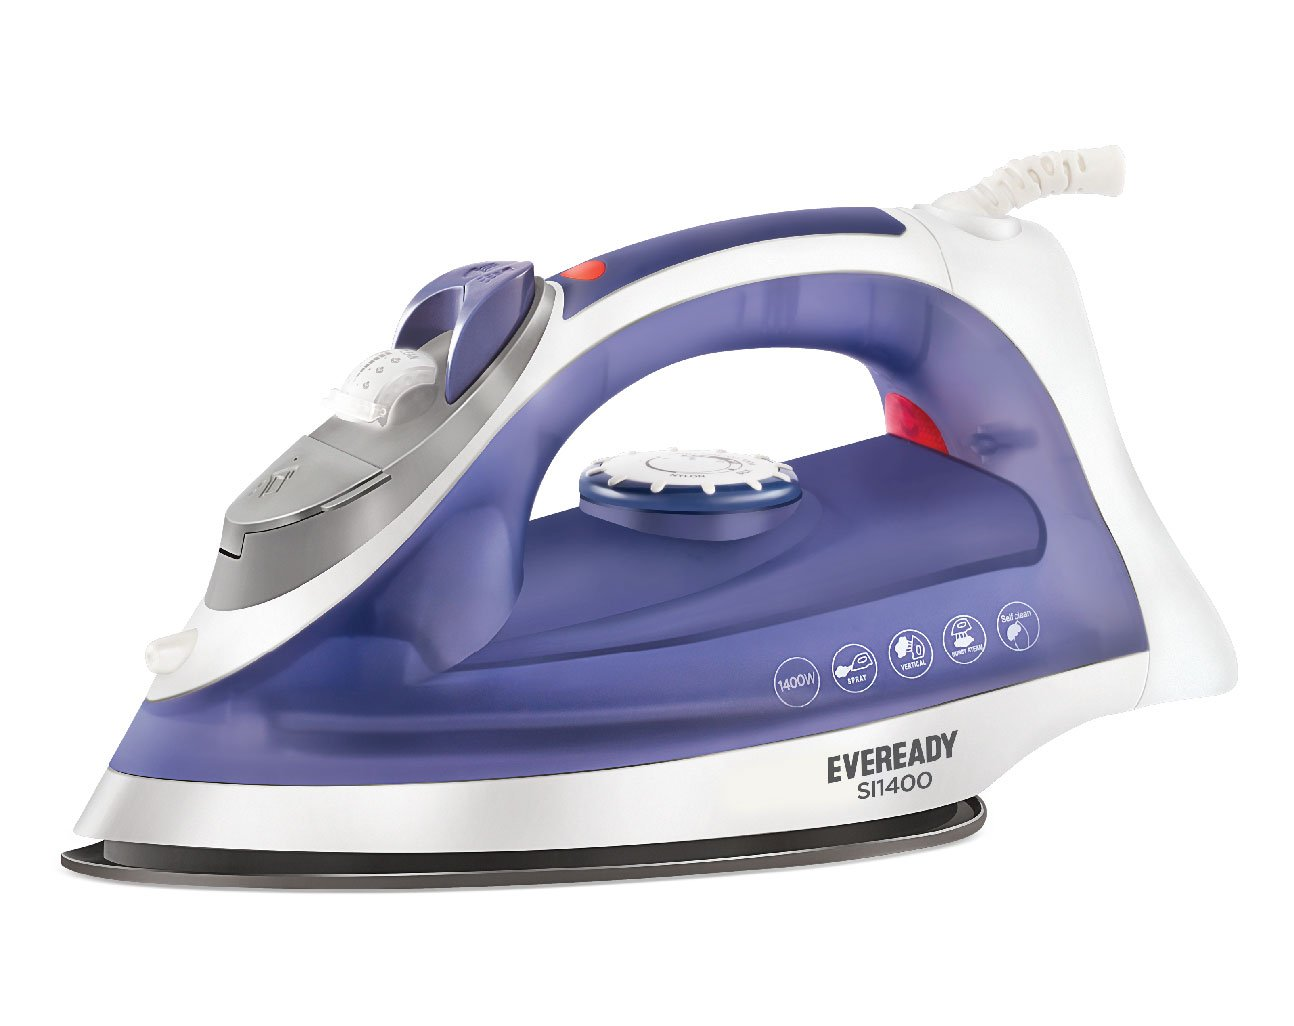 eveready steam iron